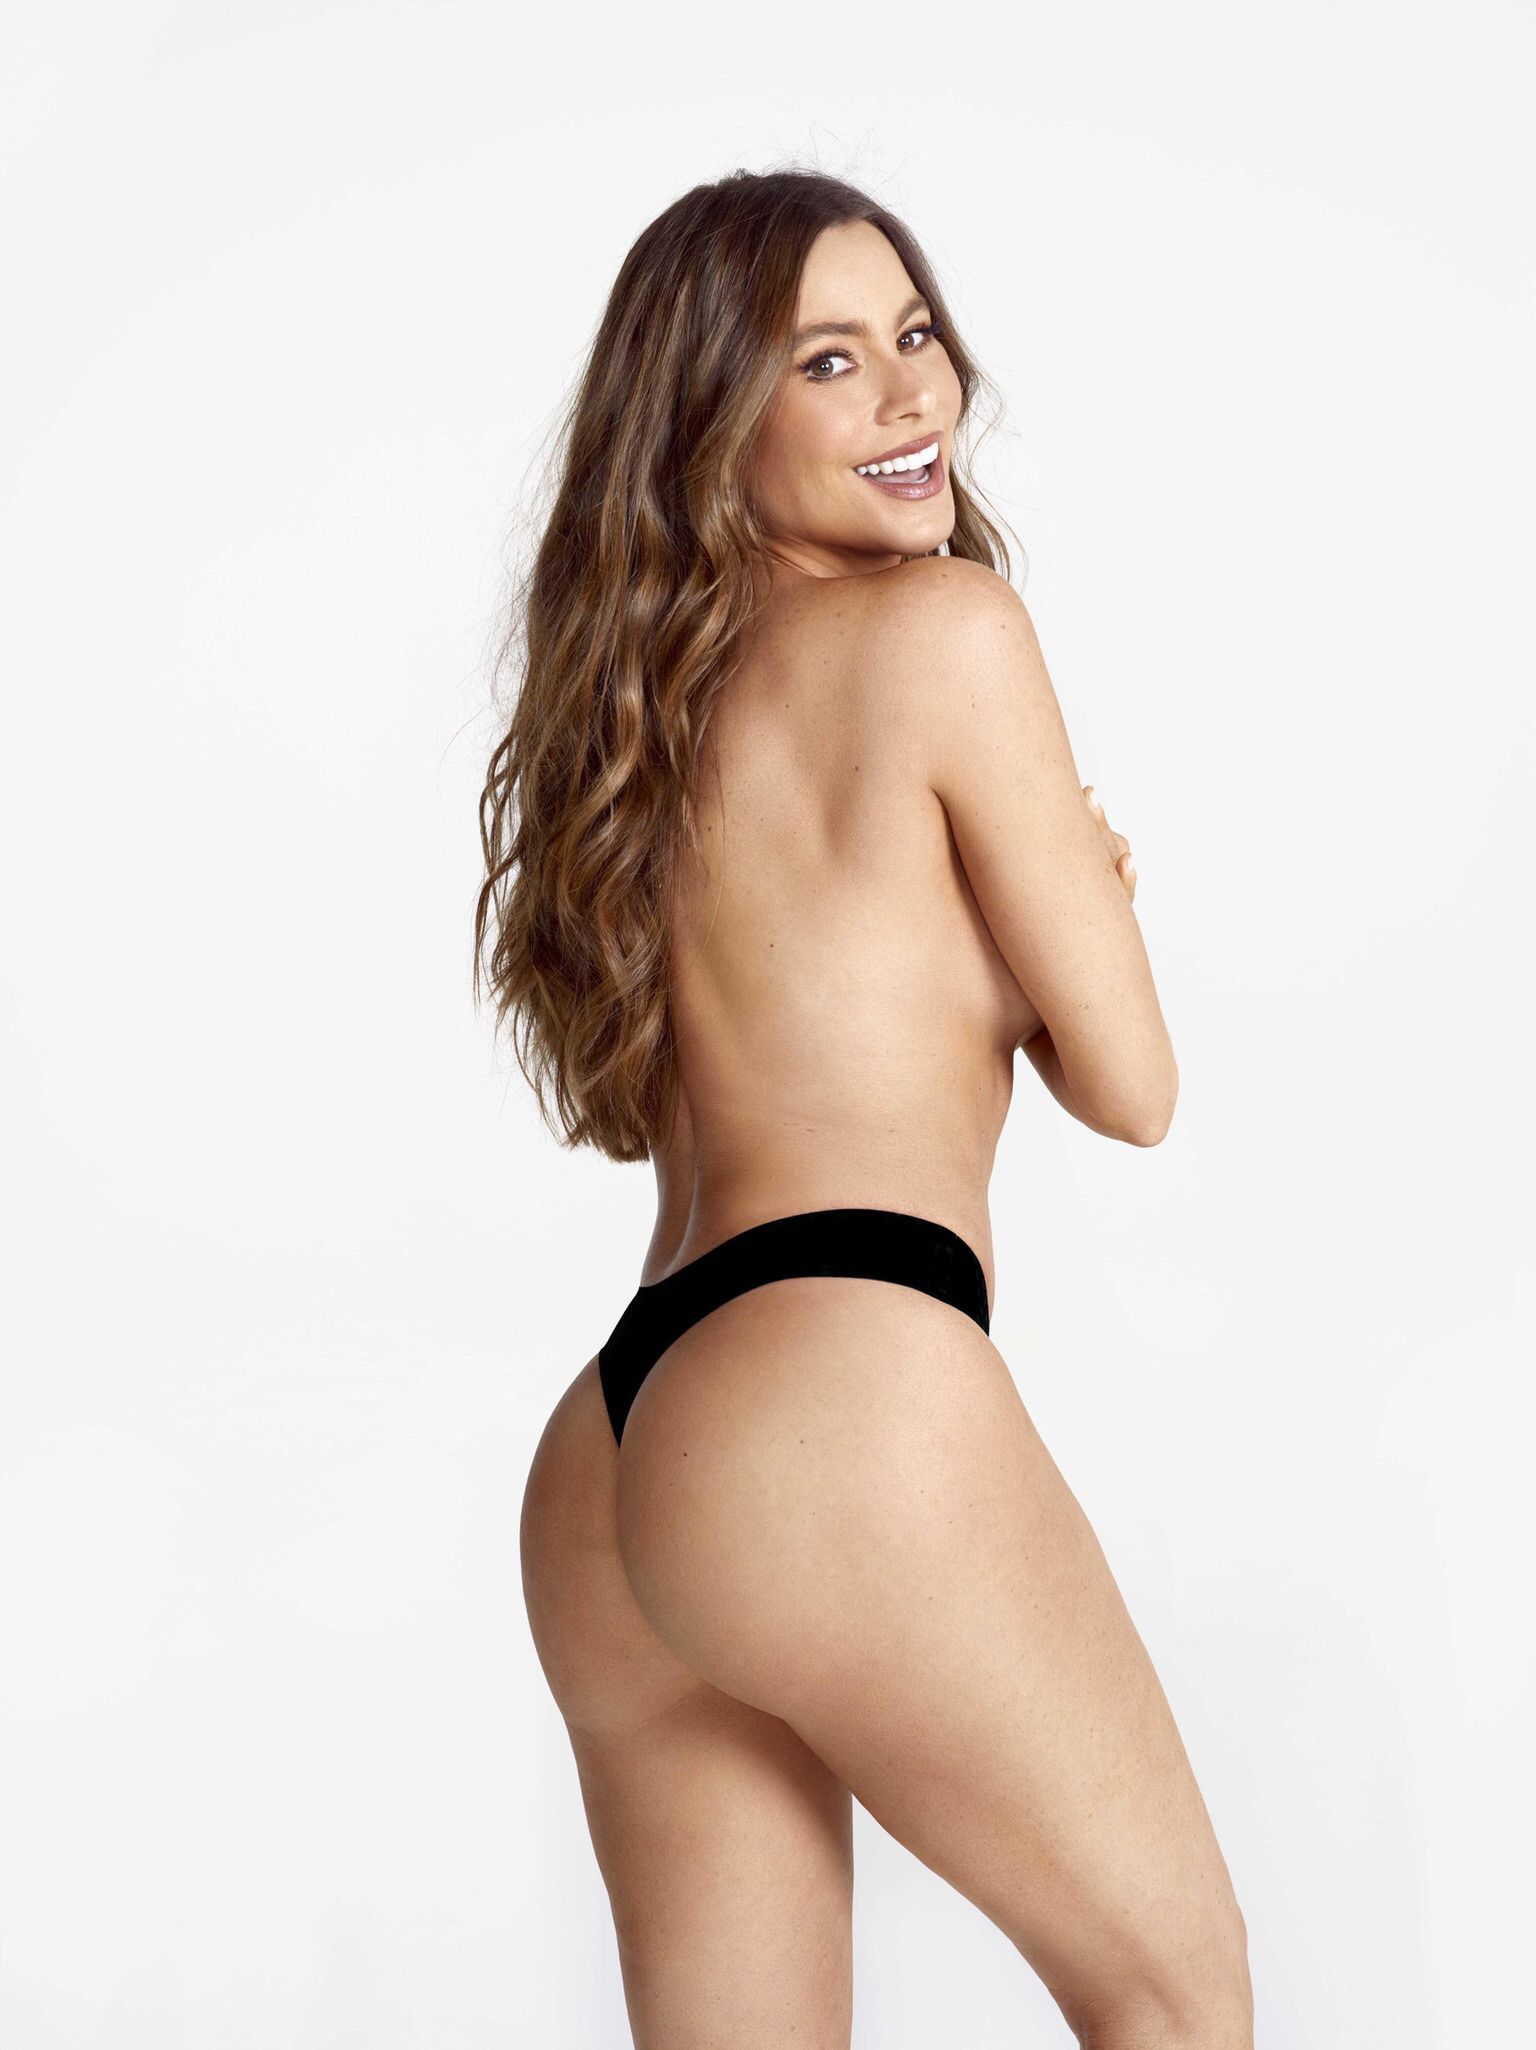 Sofia Vergara's Mexican Ass In A Thong For Pepsi nude (41 pictures)